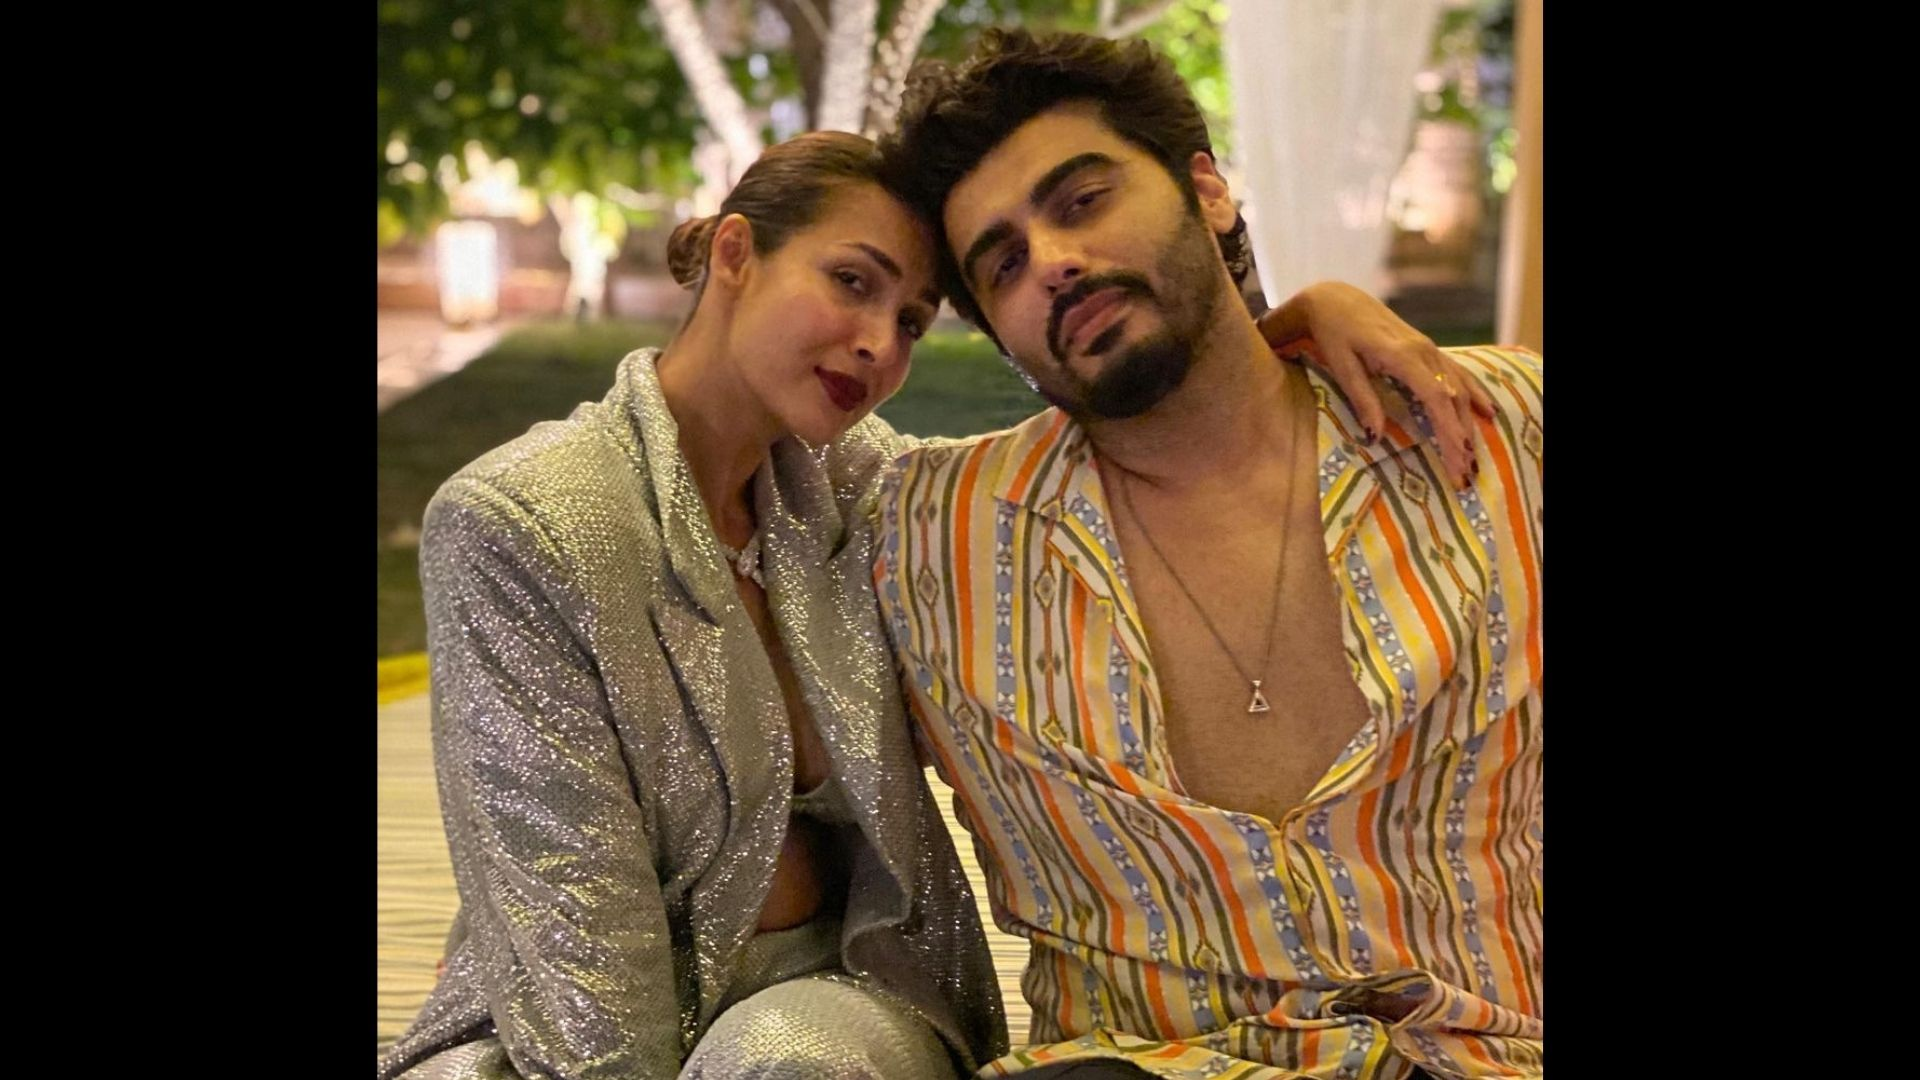 Lovebirds Malaika Arora And Arjun Kapoor Get Snapped Holding Hands After Their Dinner Date; Photos Will Leave You Awwing